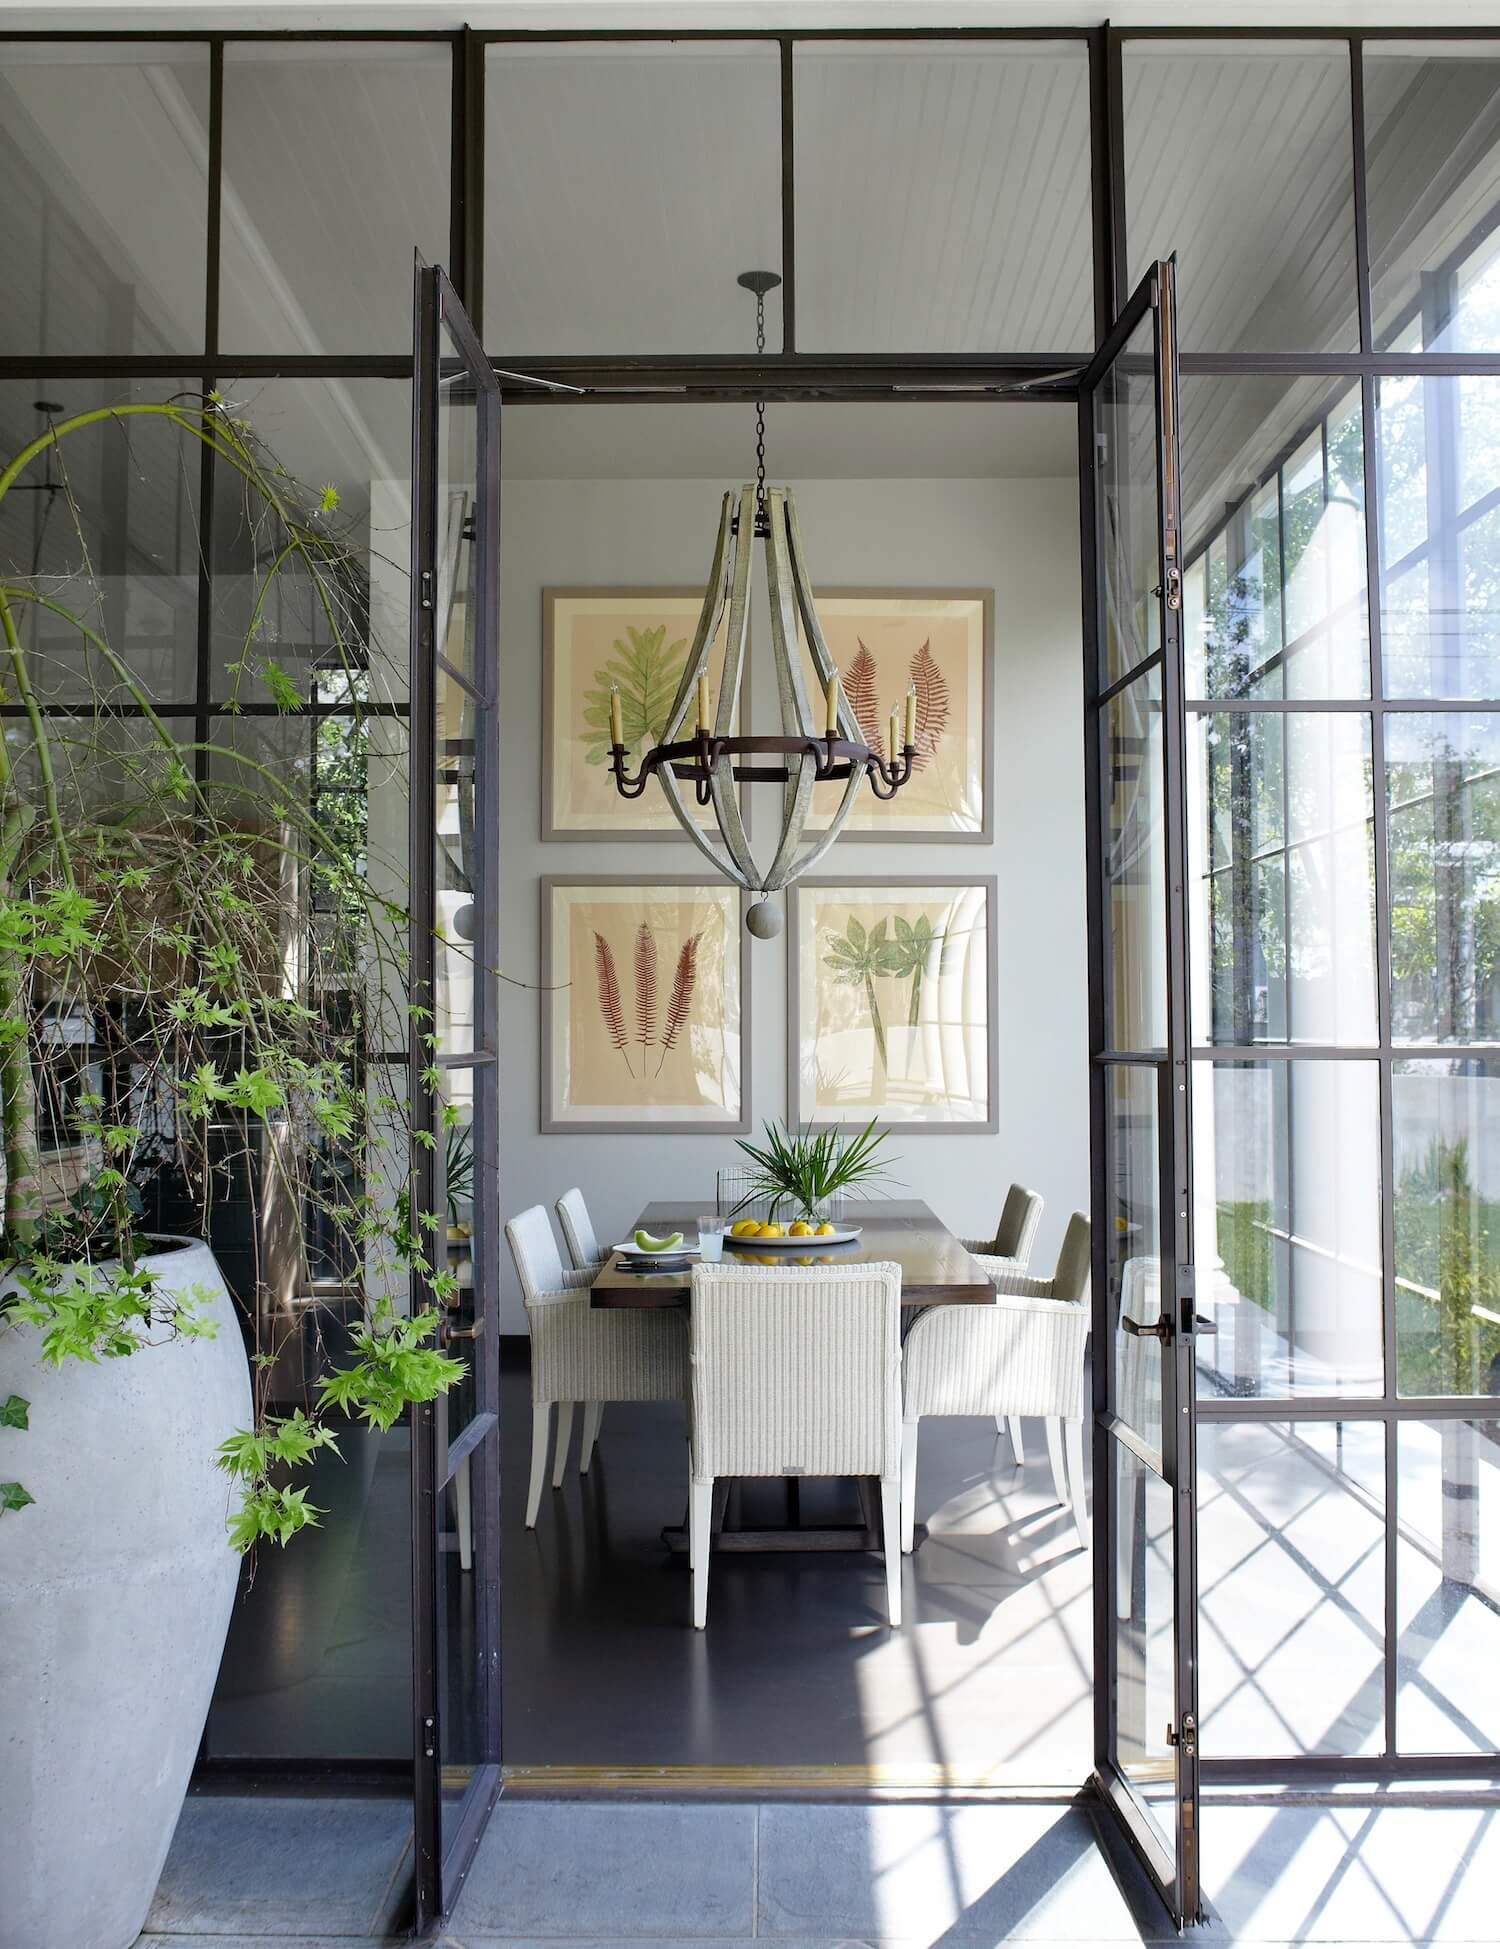 AHD-beautiful-accent-pieces-plants.jpg